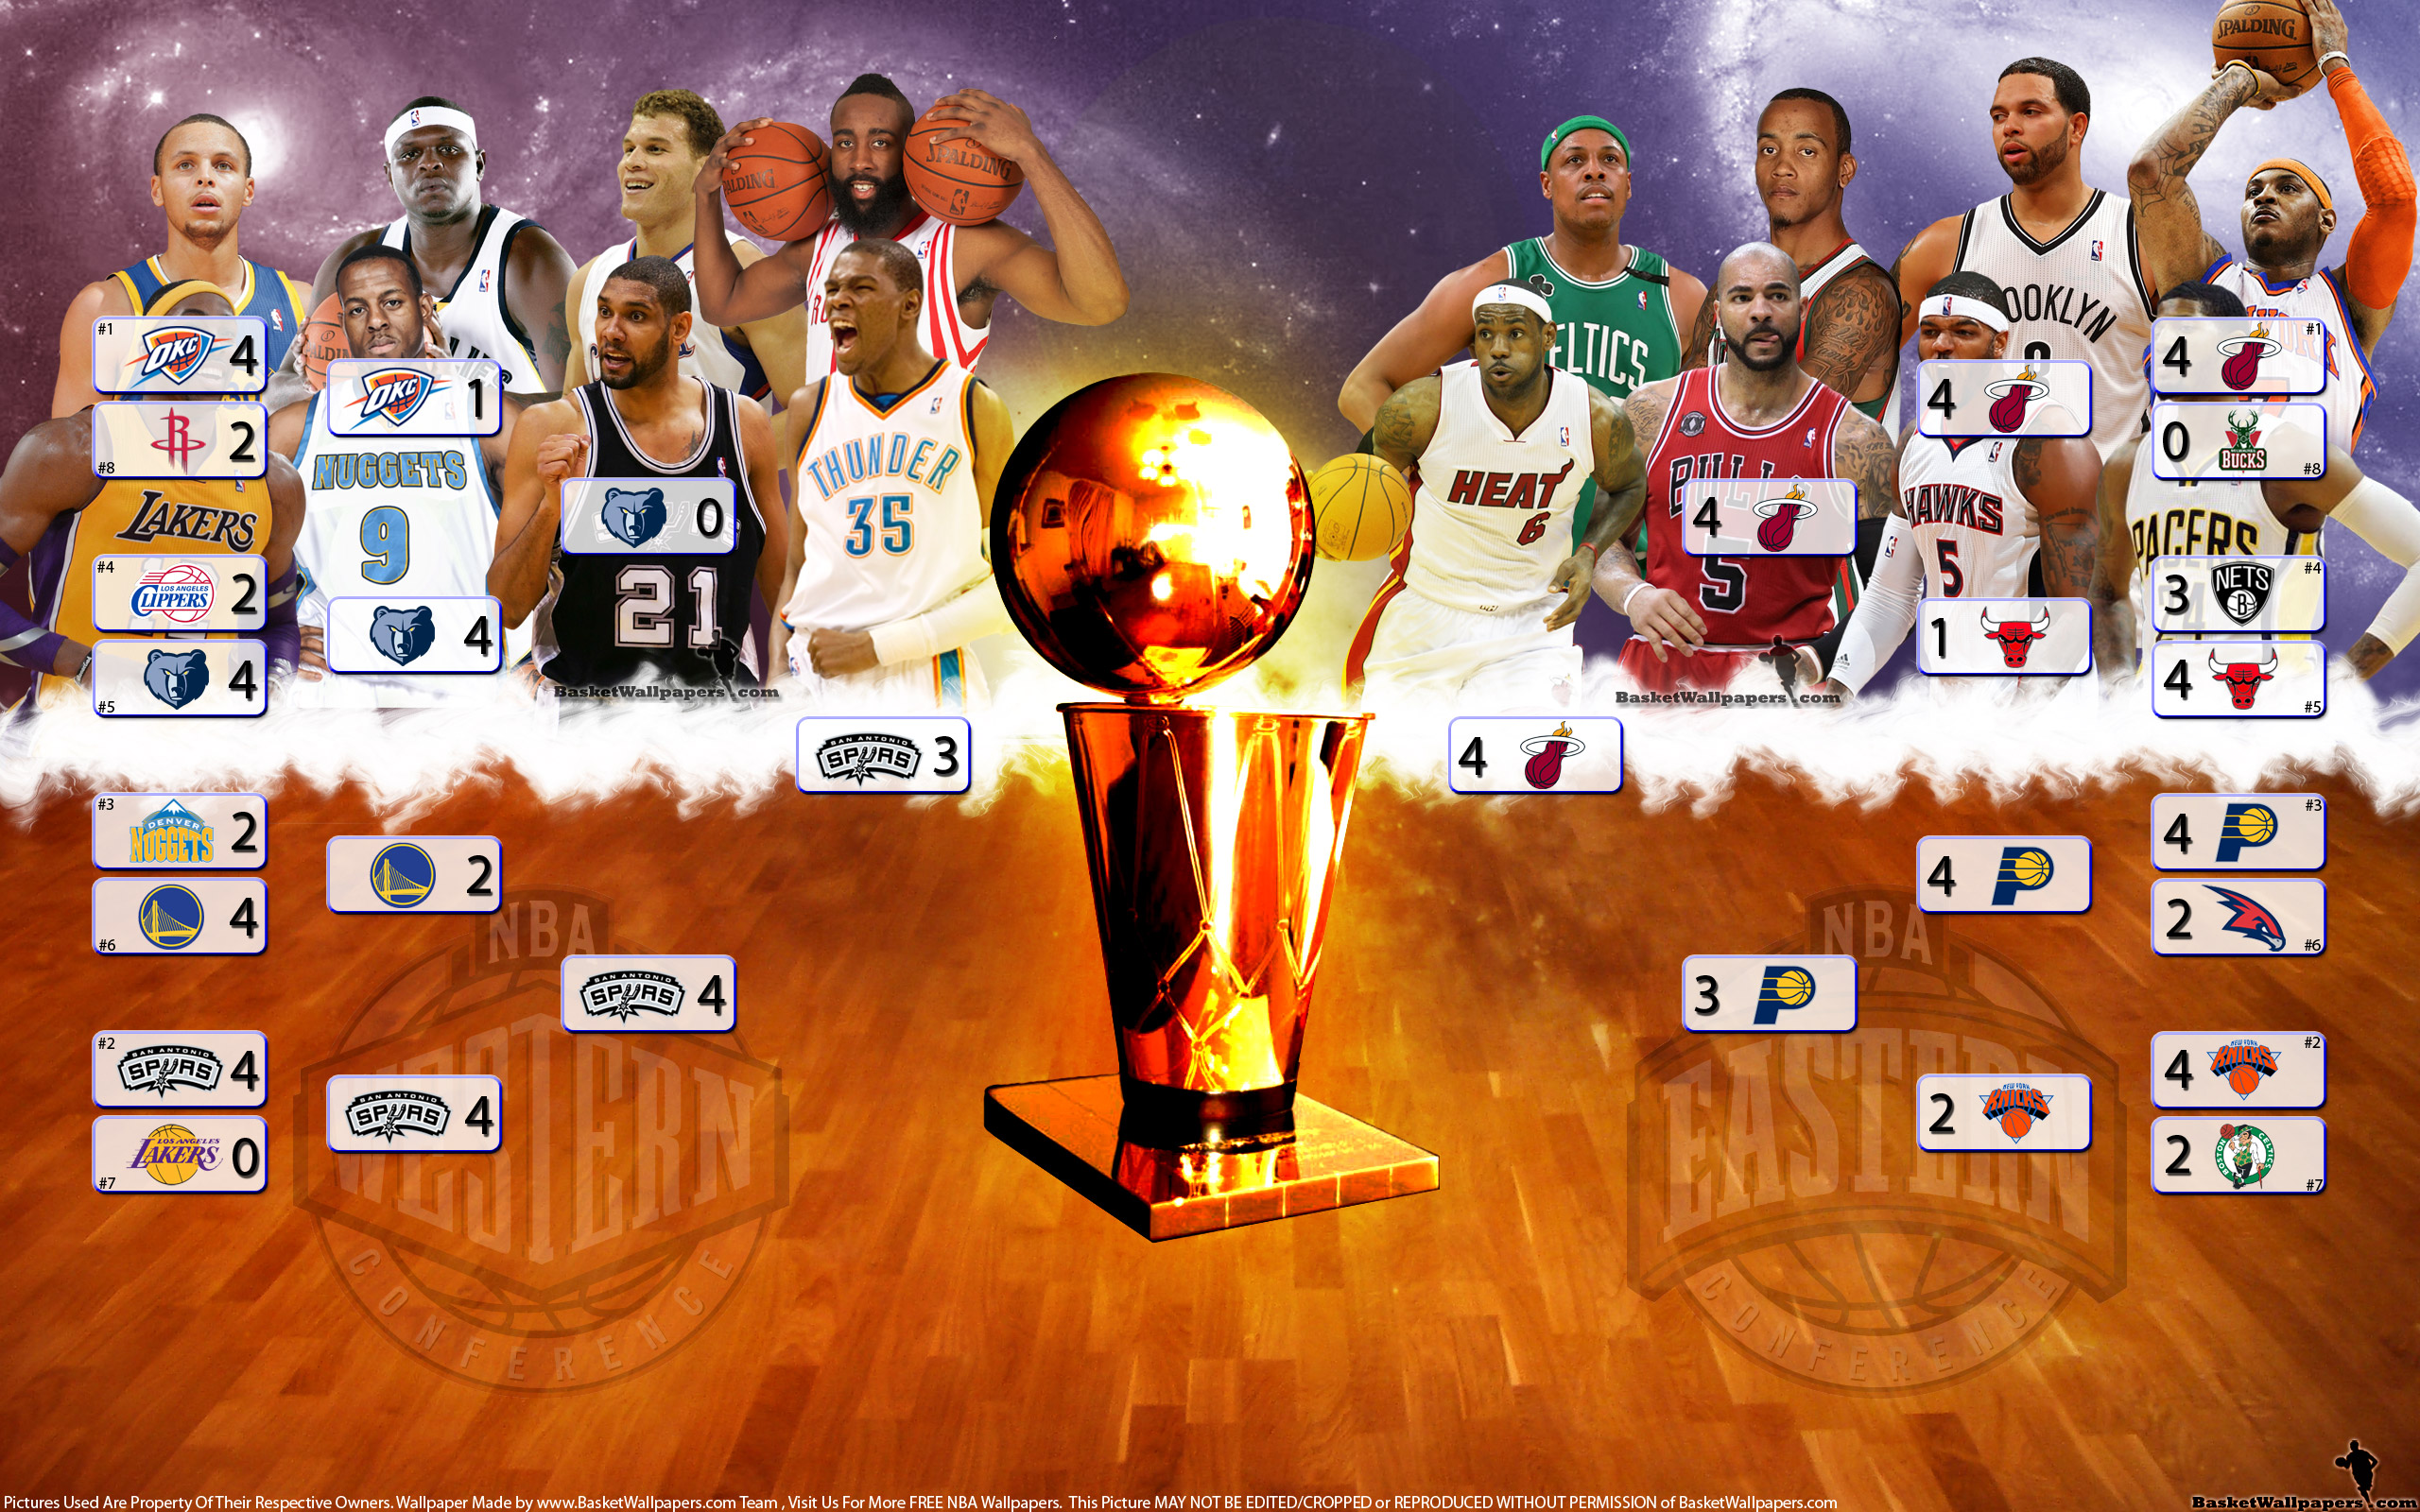 2013 NBA Playoffs 2560×1600 Wallpaper | Basketball Wallpapers at BasketWallpapers.com